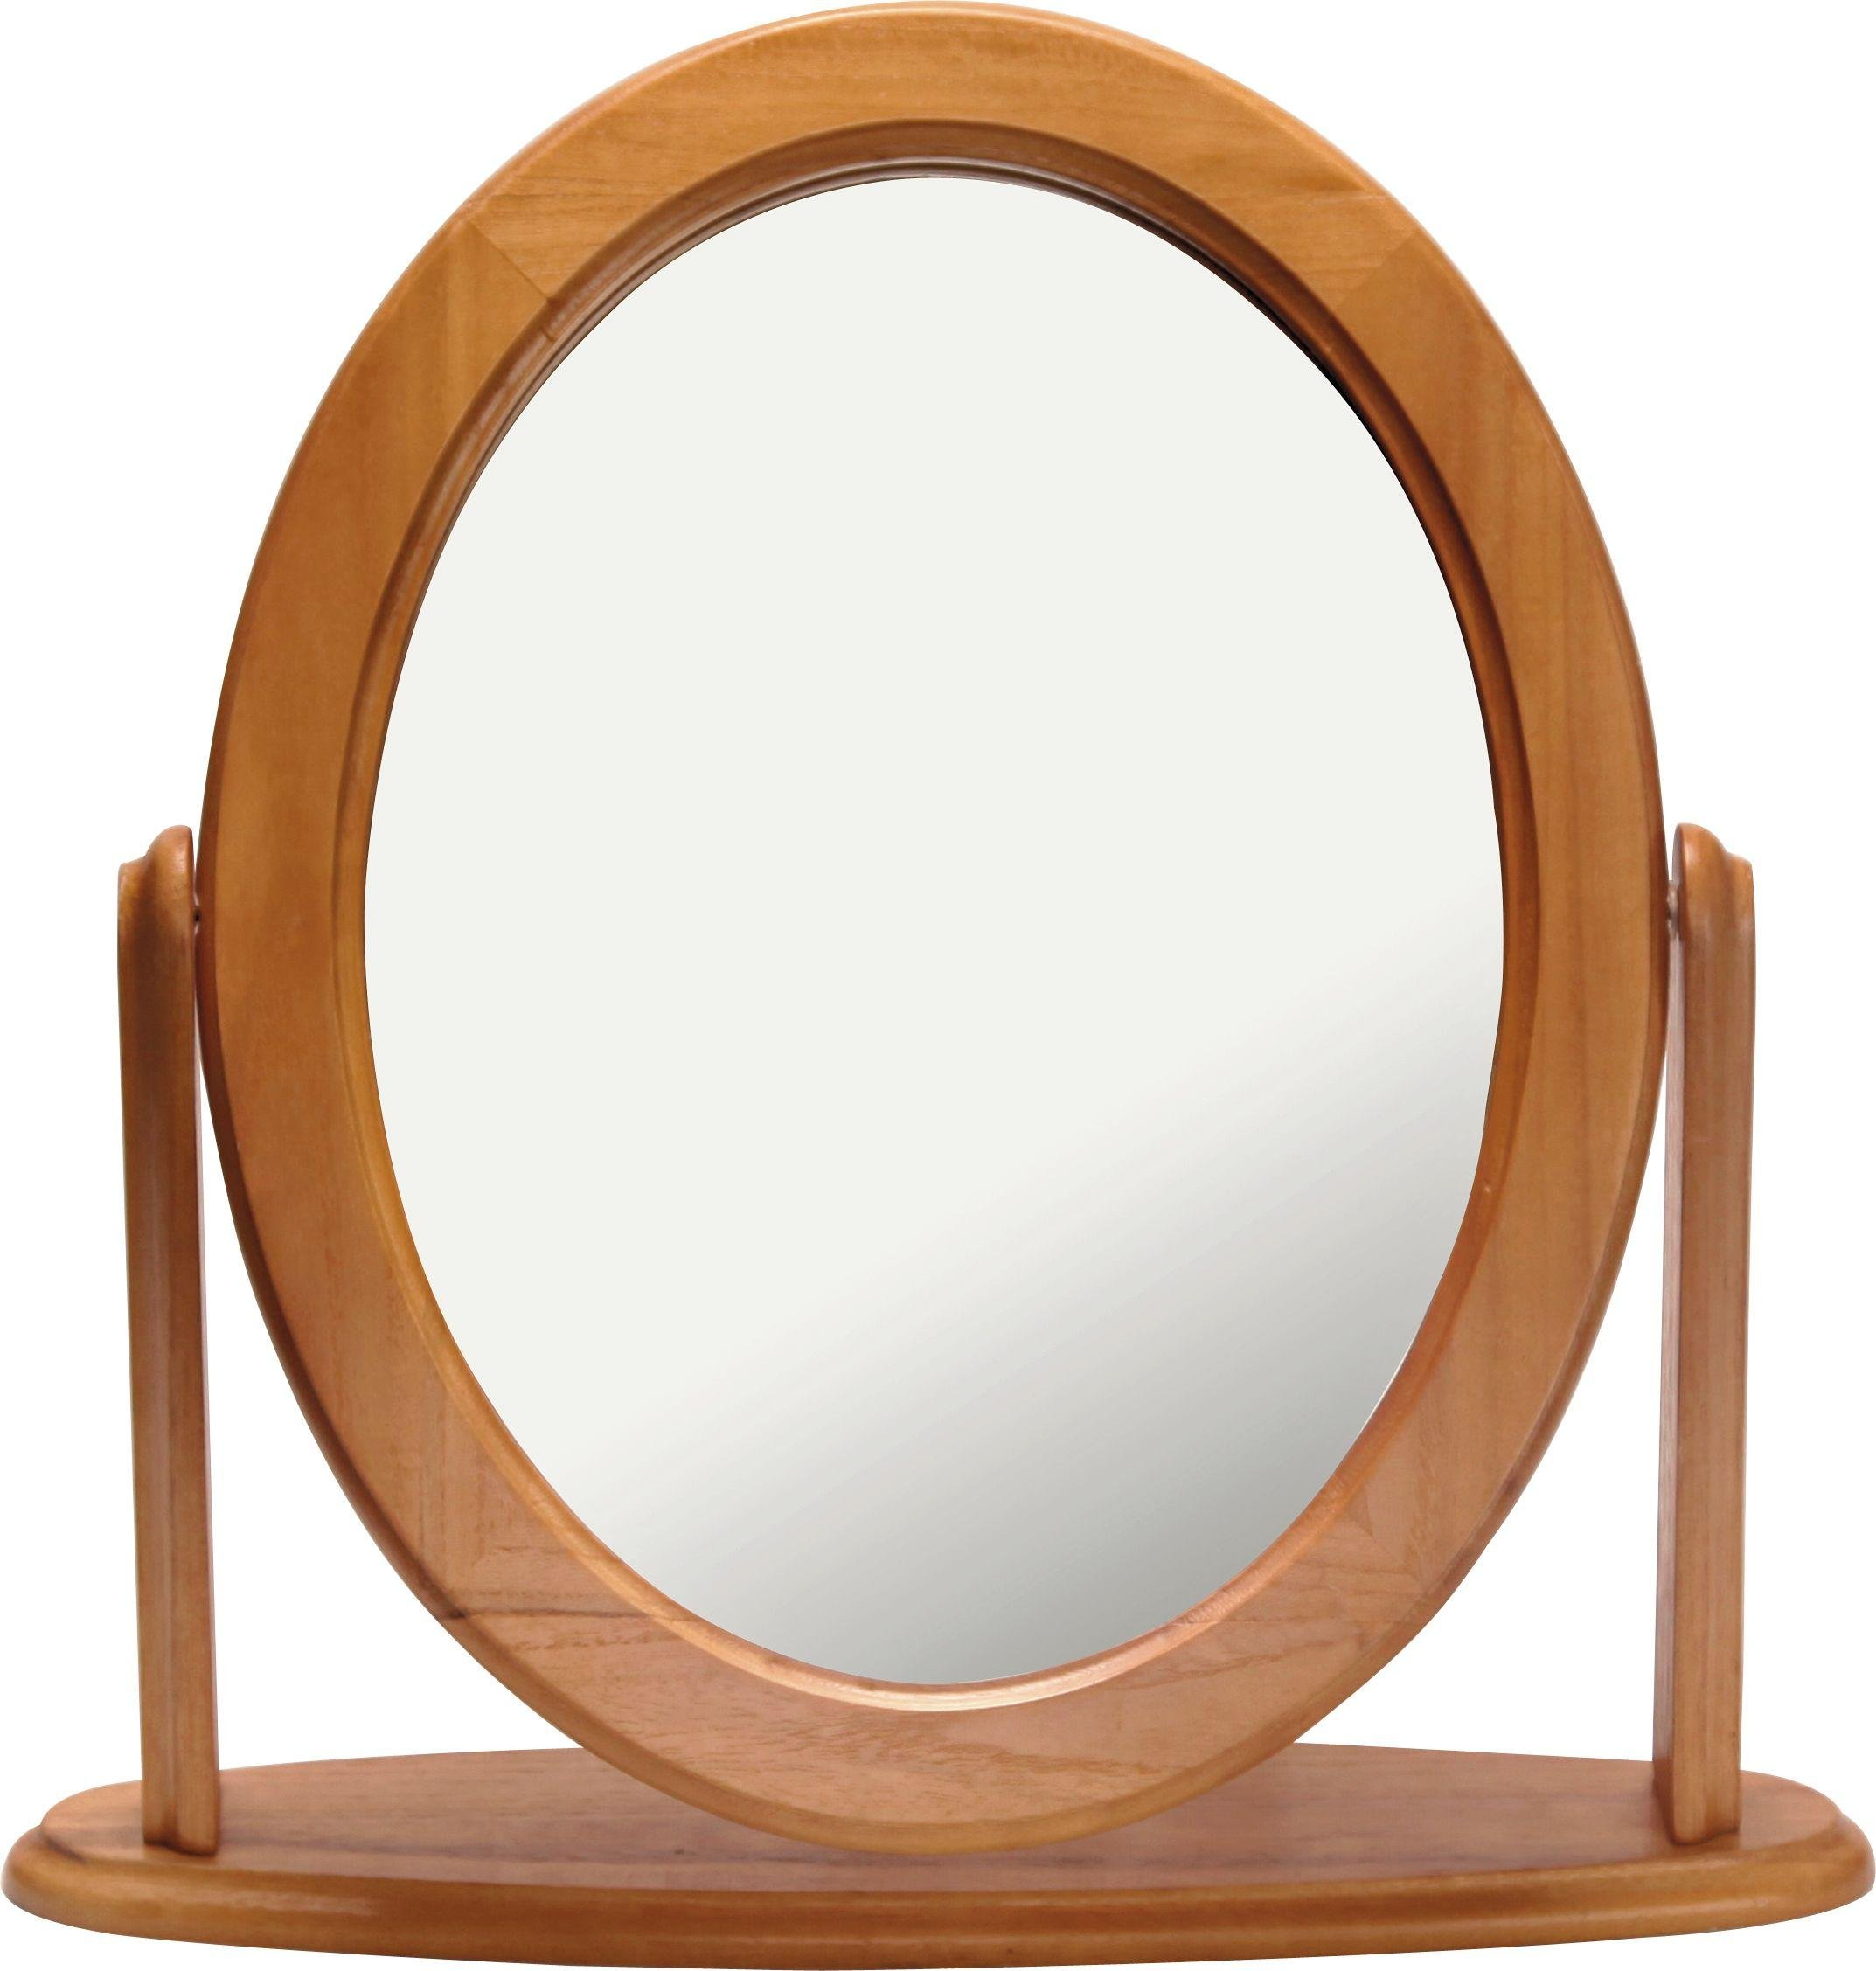 Dressing table mirror find it for less for Where to find mirrors